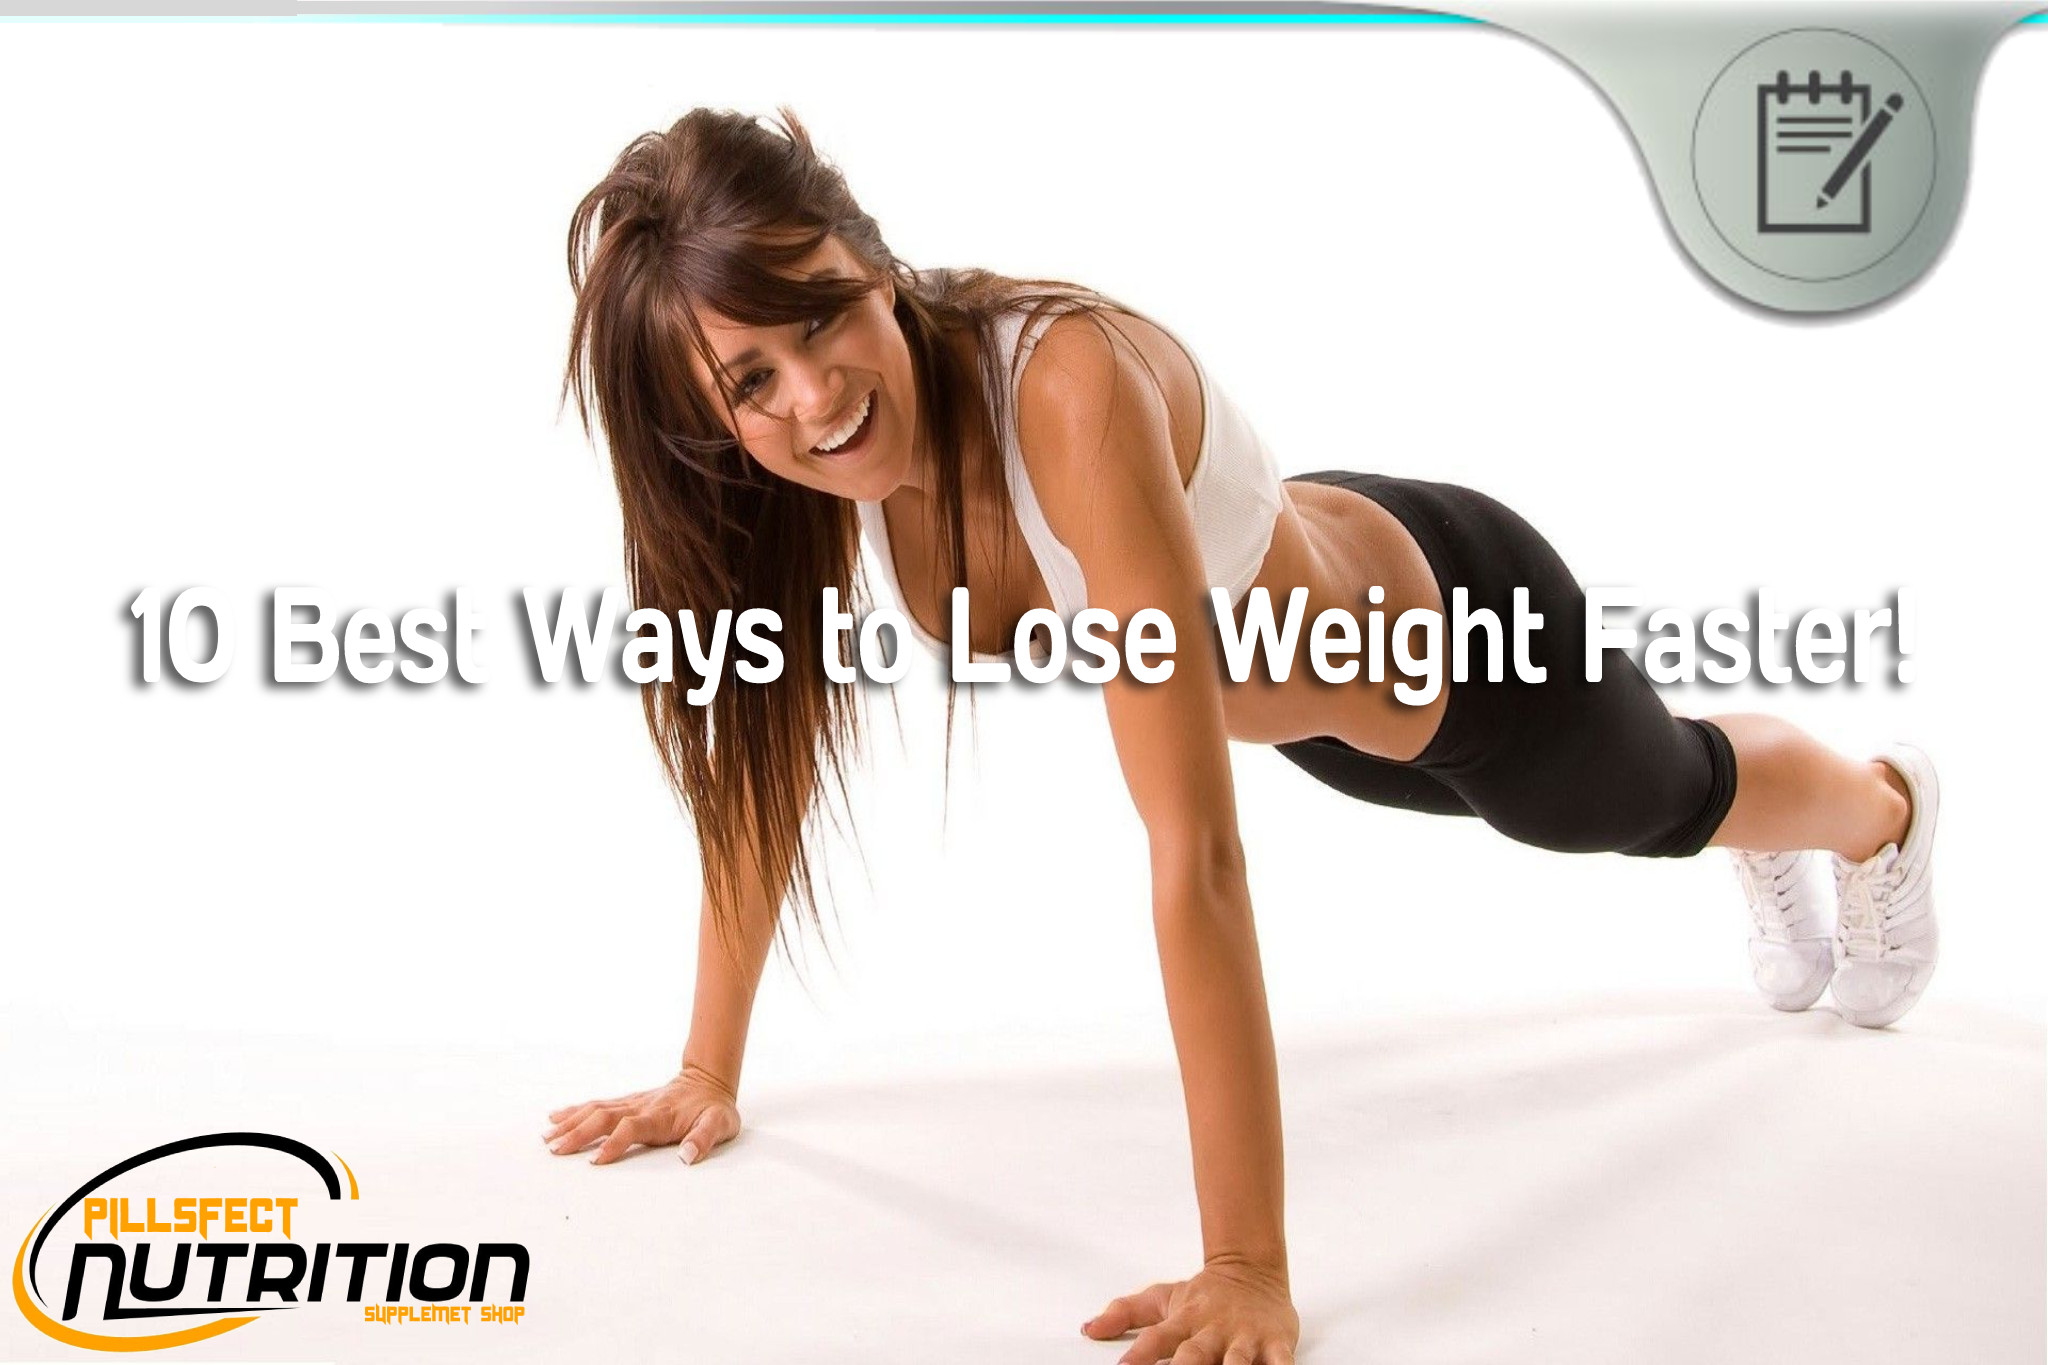 How to Lose Weight Fast Naturally - 10 Best Ways to Lose Weight Faster!